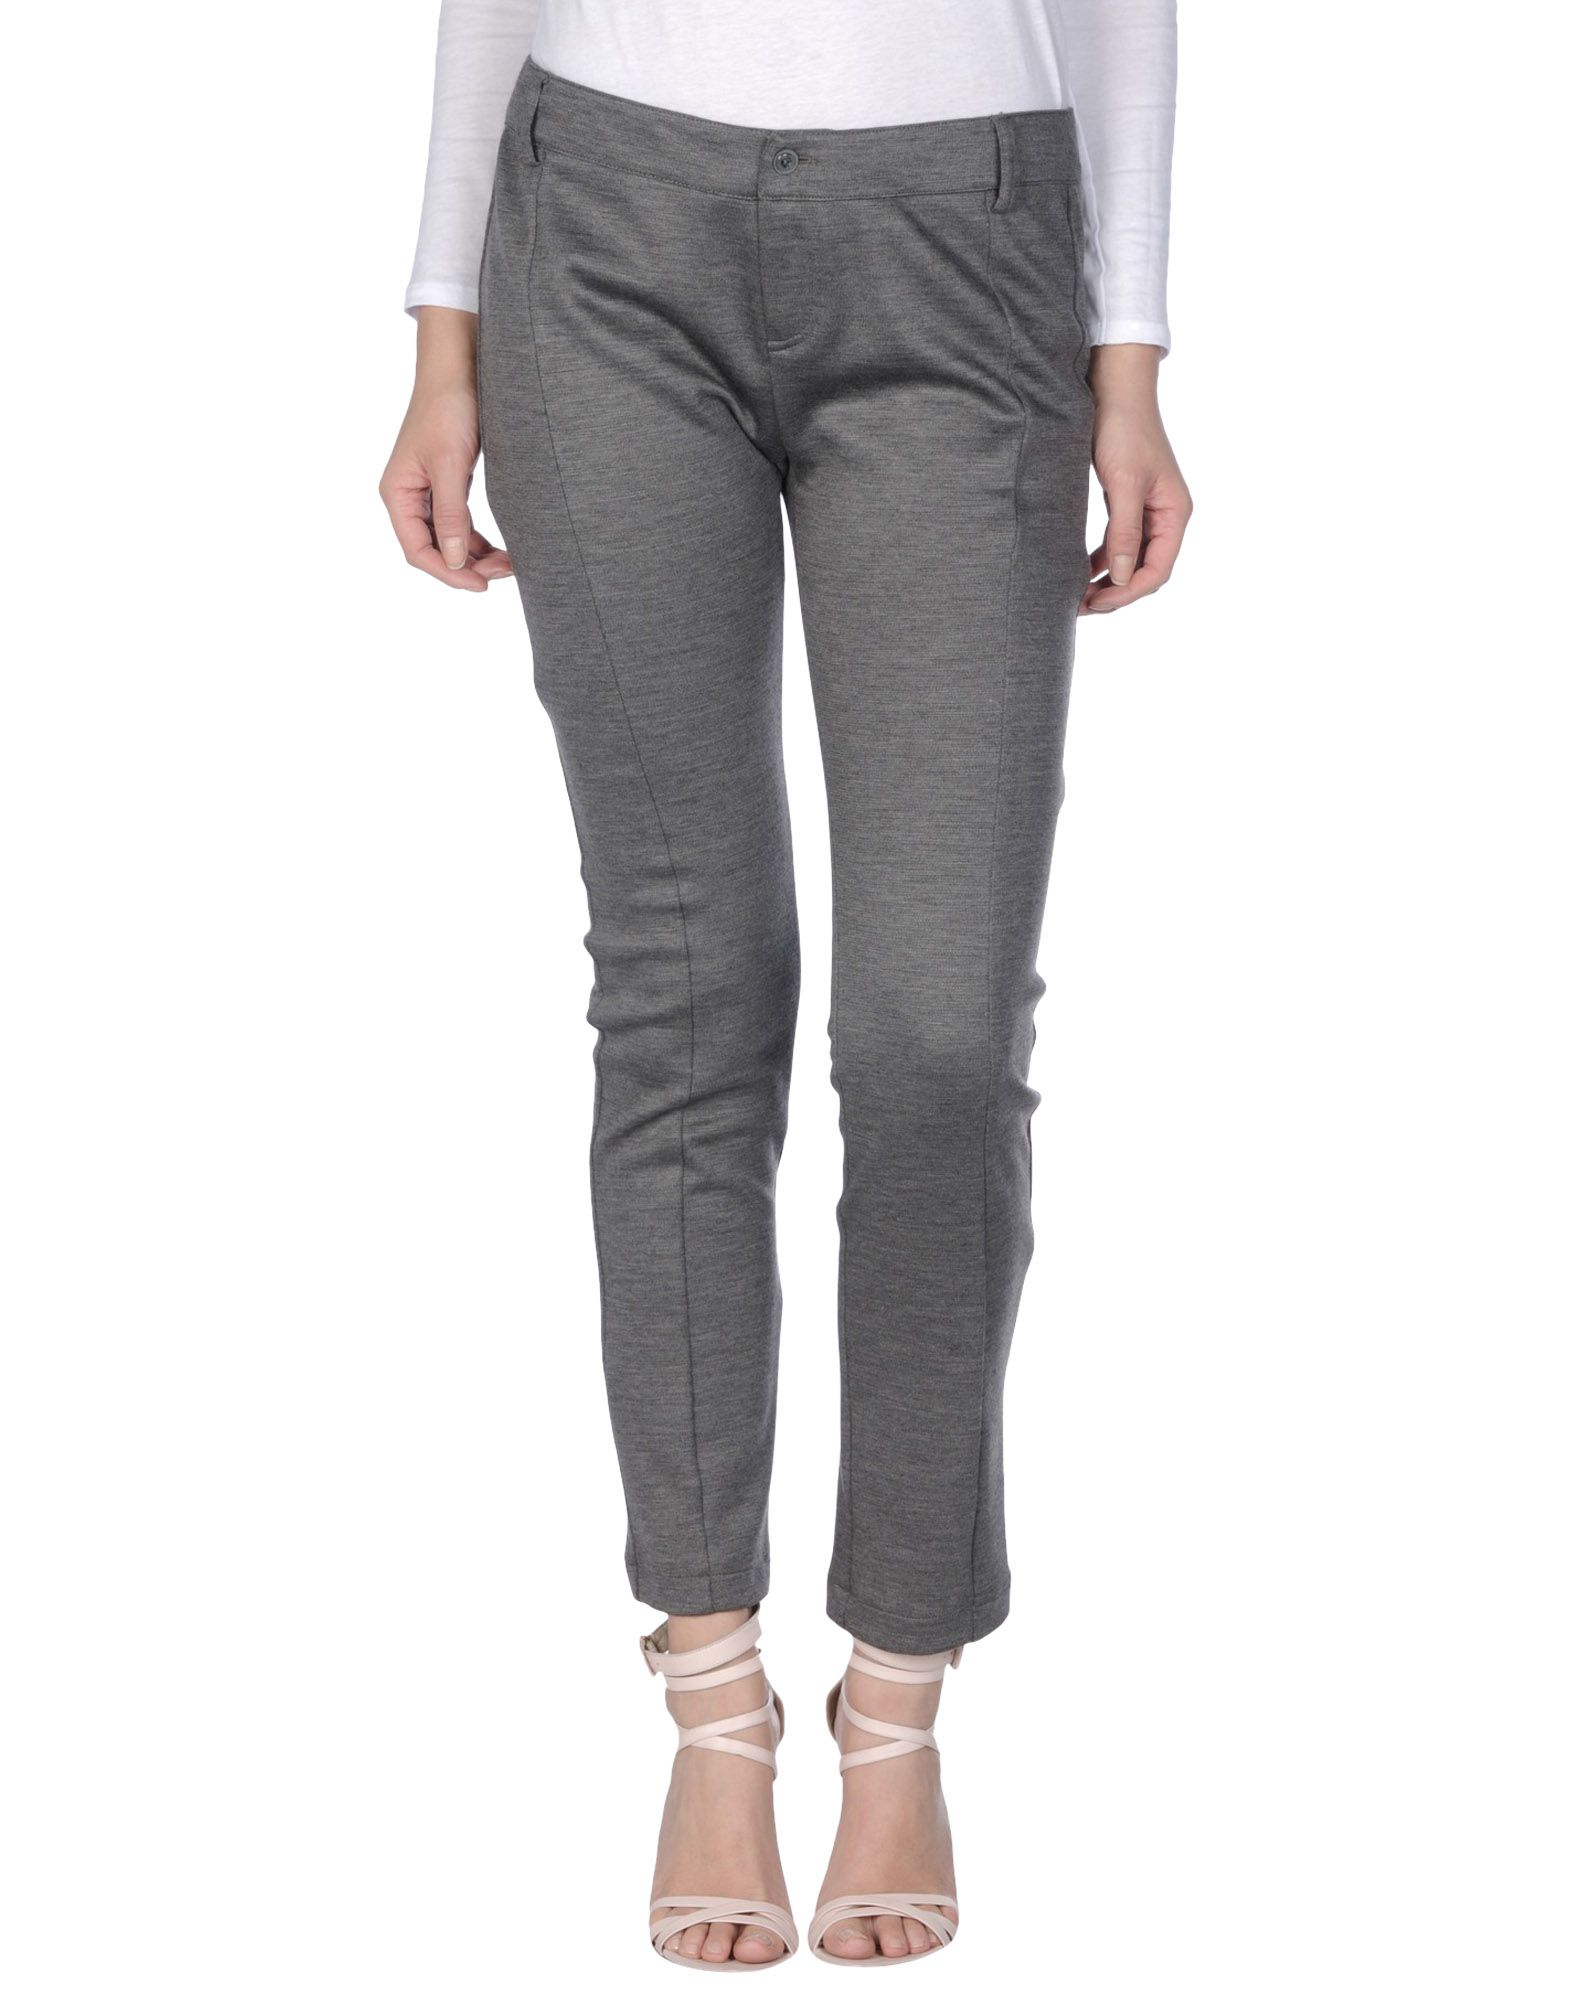 Creative   WOMEN  Womens Clothing  Trousers  GUESS BY MARCIANO DENIM PANTS